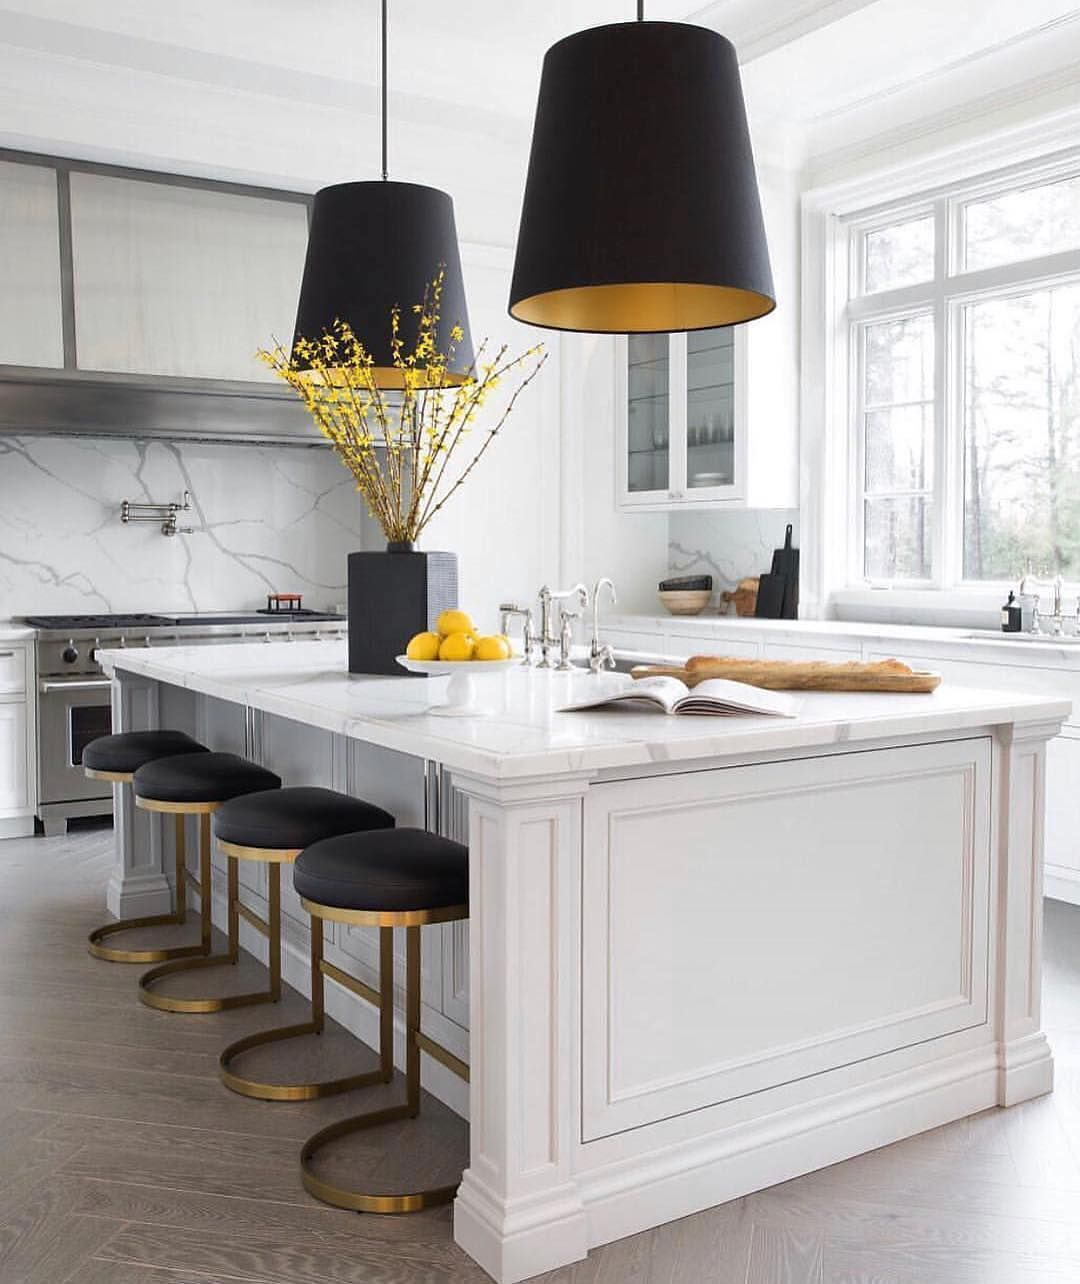 search photos of kitchen designs discover ideas for your kitchen area remodel or upgrade on kitchen interior accessories id=36295